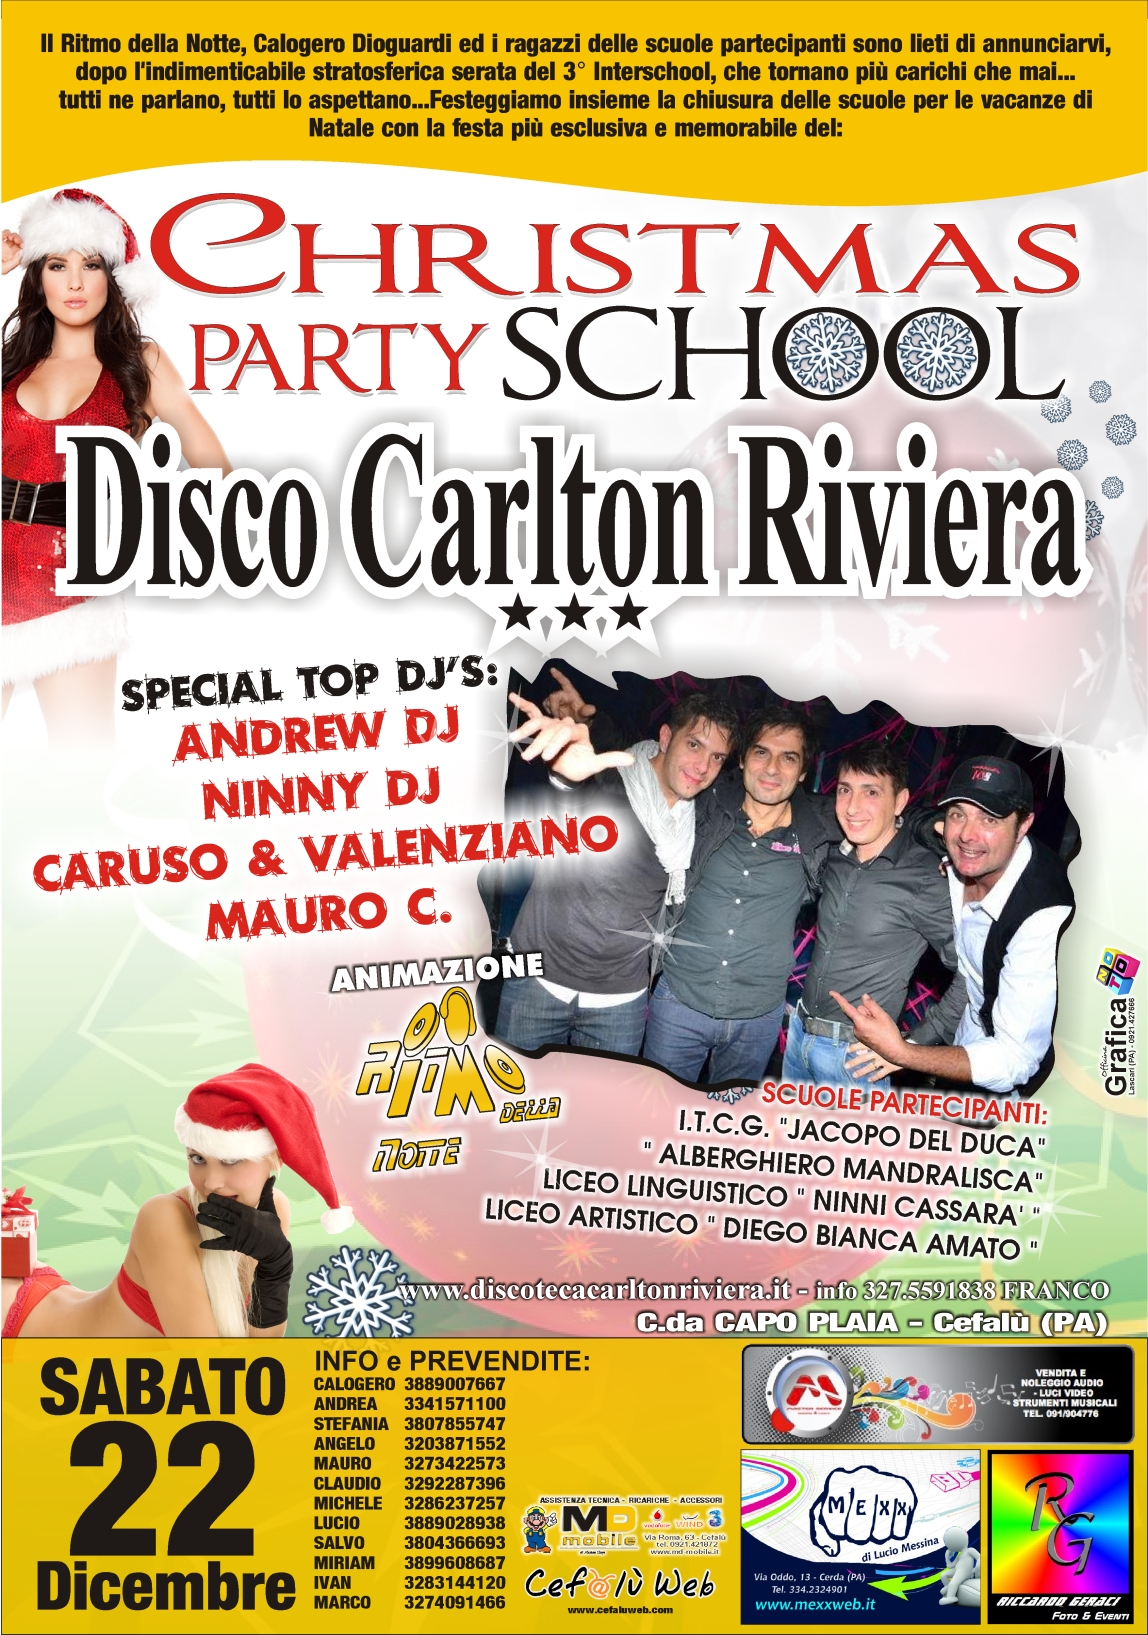 Discoteca Carlton Riviera: Christmas Party School